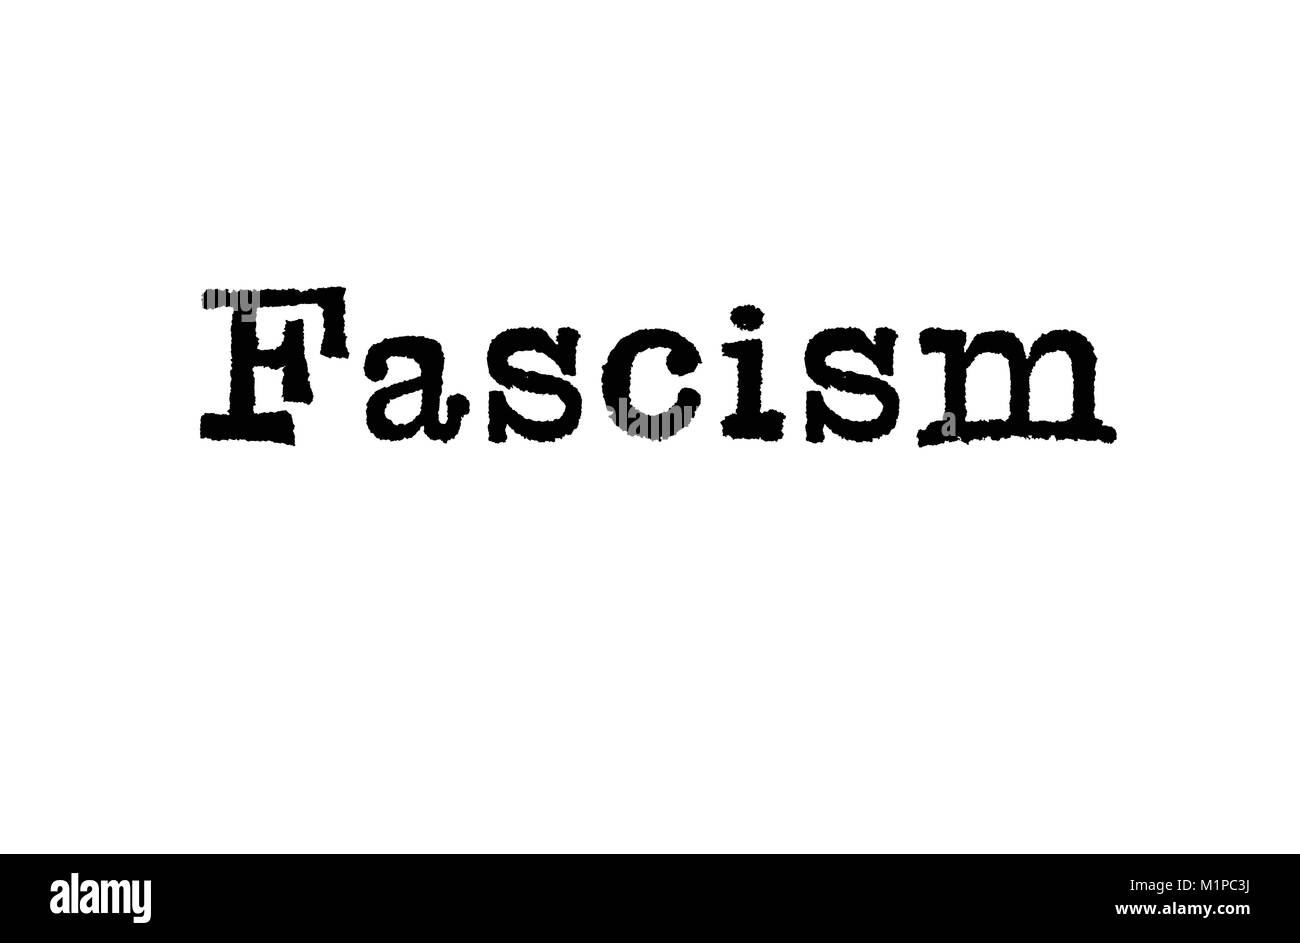 The word Fascism from a typewriter on a white background - Stock Image